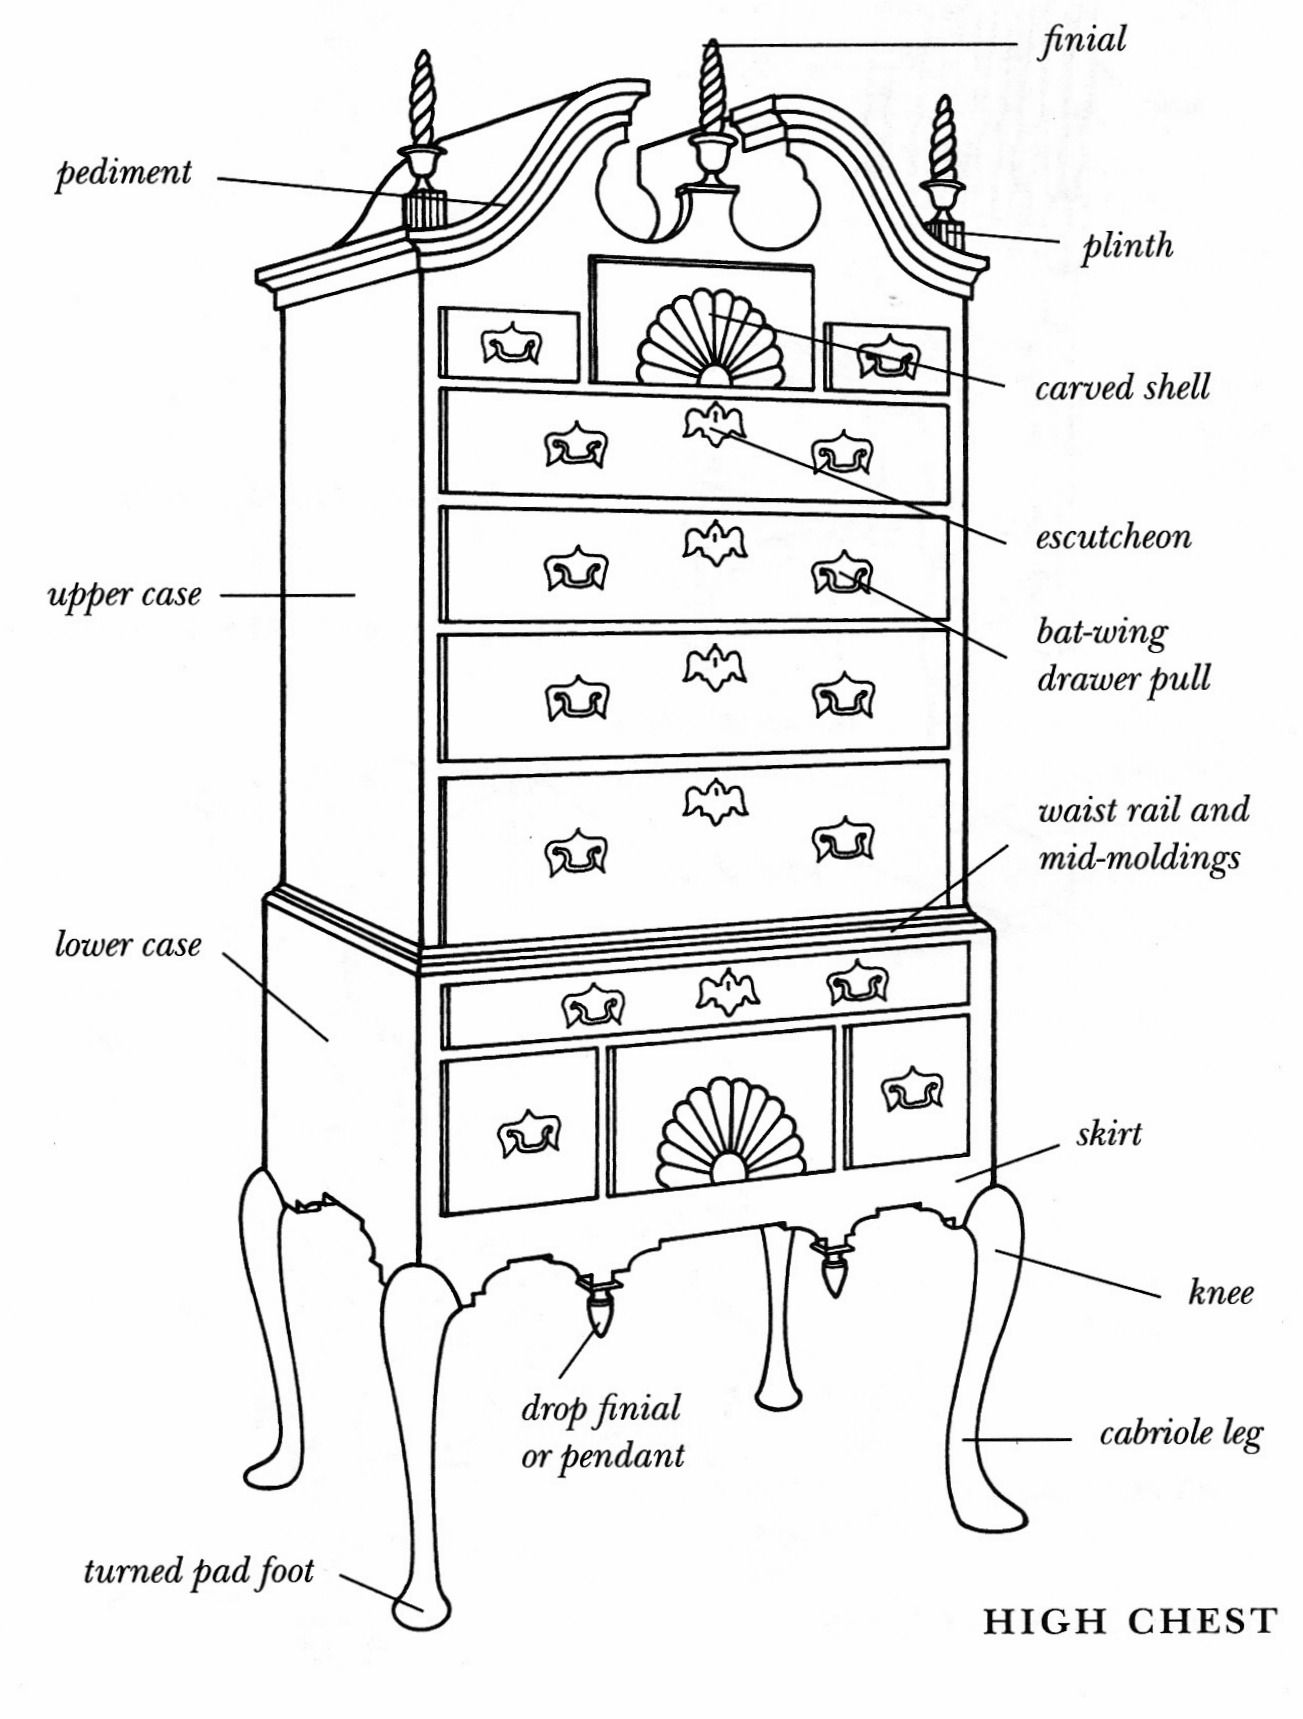 Antique chair drawing - Diagram Of A High Chest Furniture Stylesfurniture Designvintage Chairsdrawing